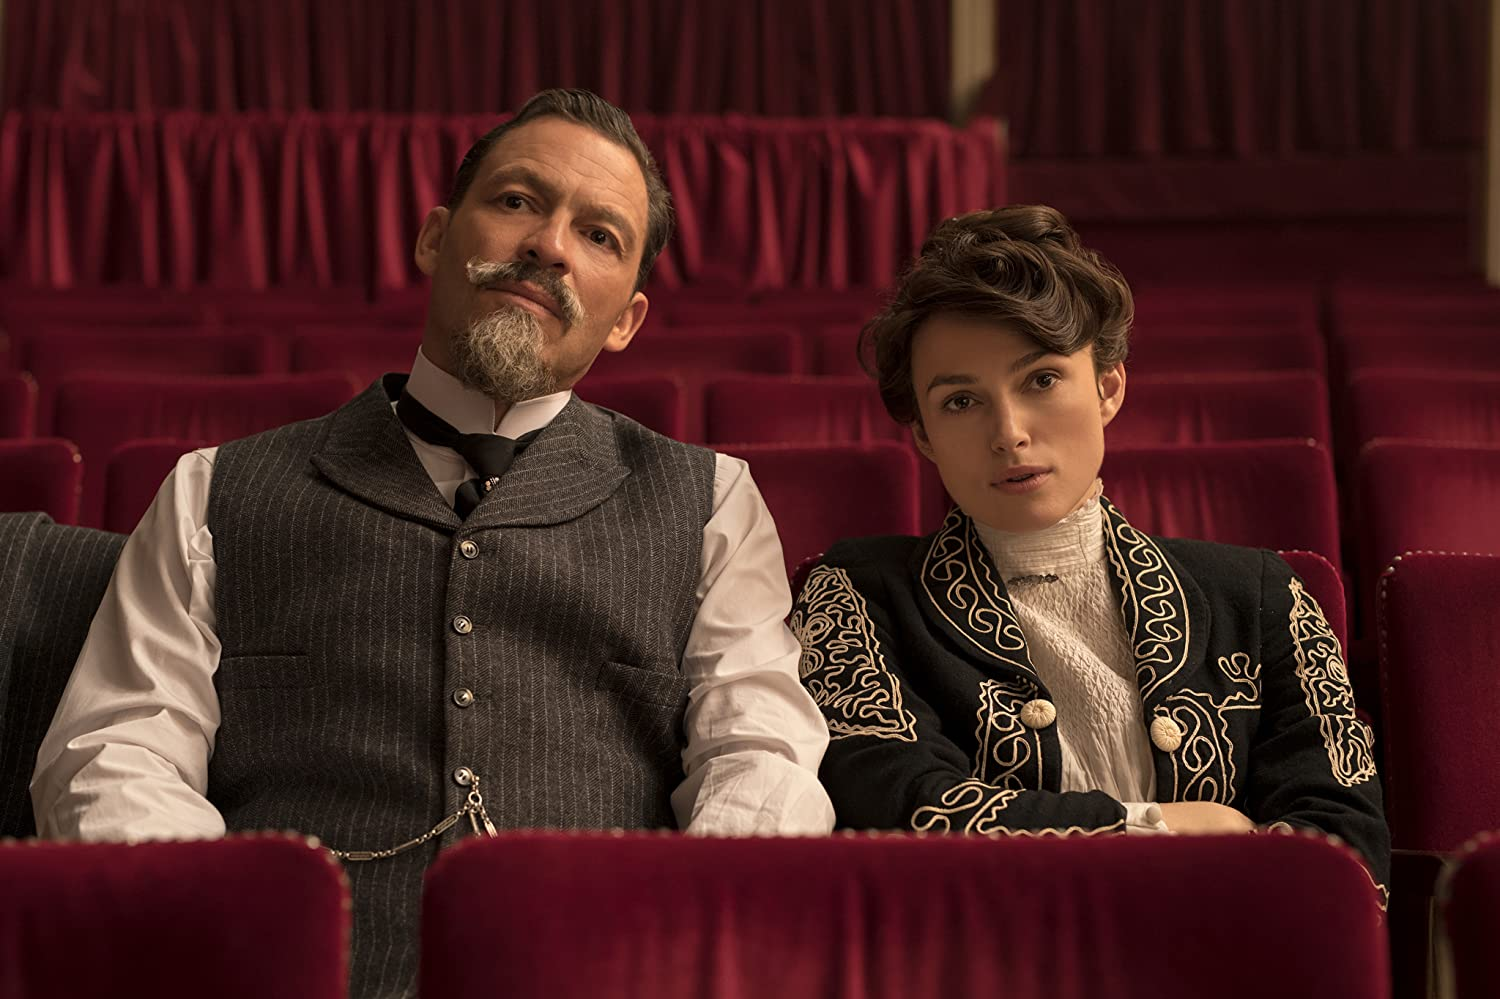 Keira Knightley and Dominic West in Colette (2018)